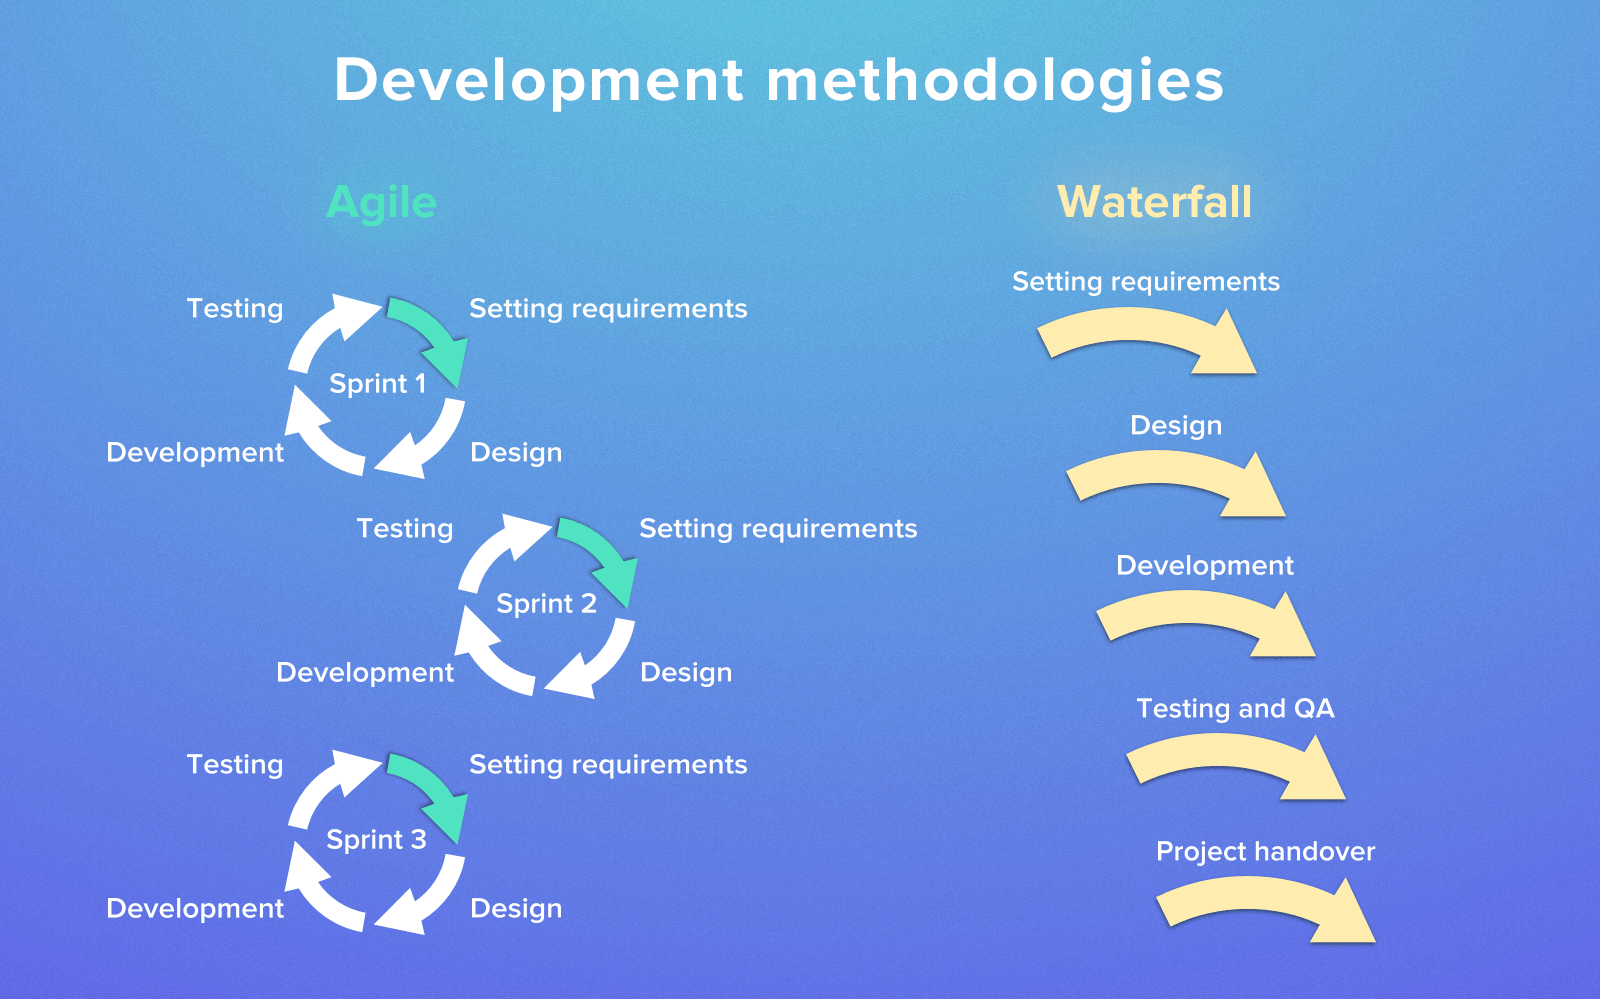 Agile methodology and Waterfall methodology in Fixed Price model